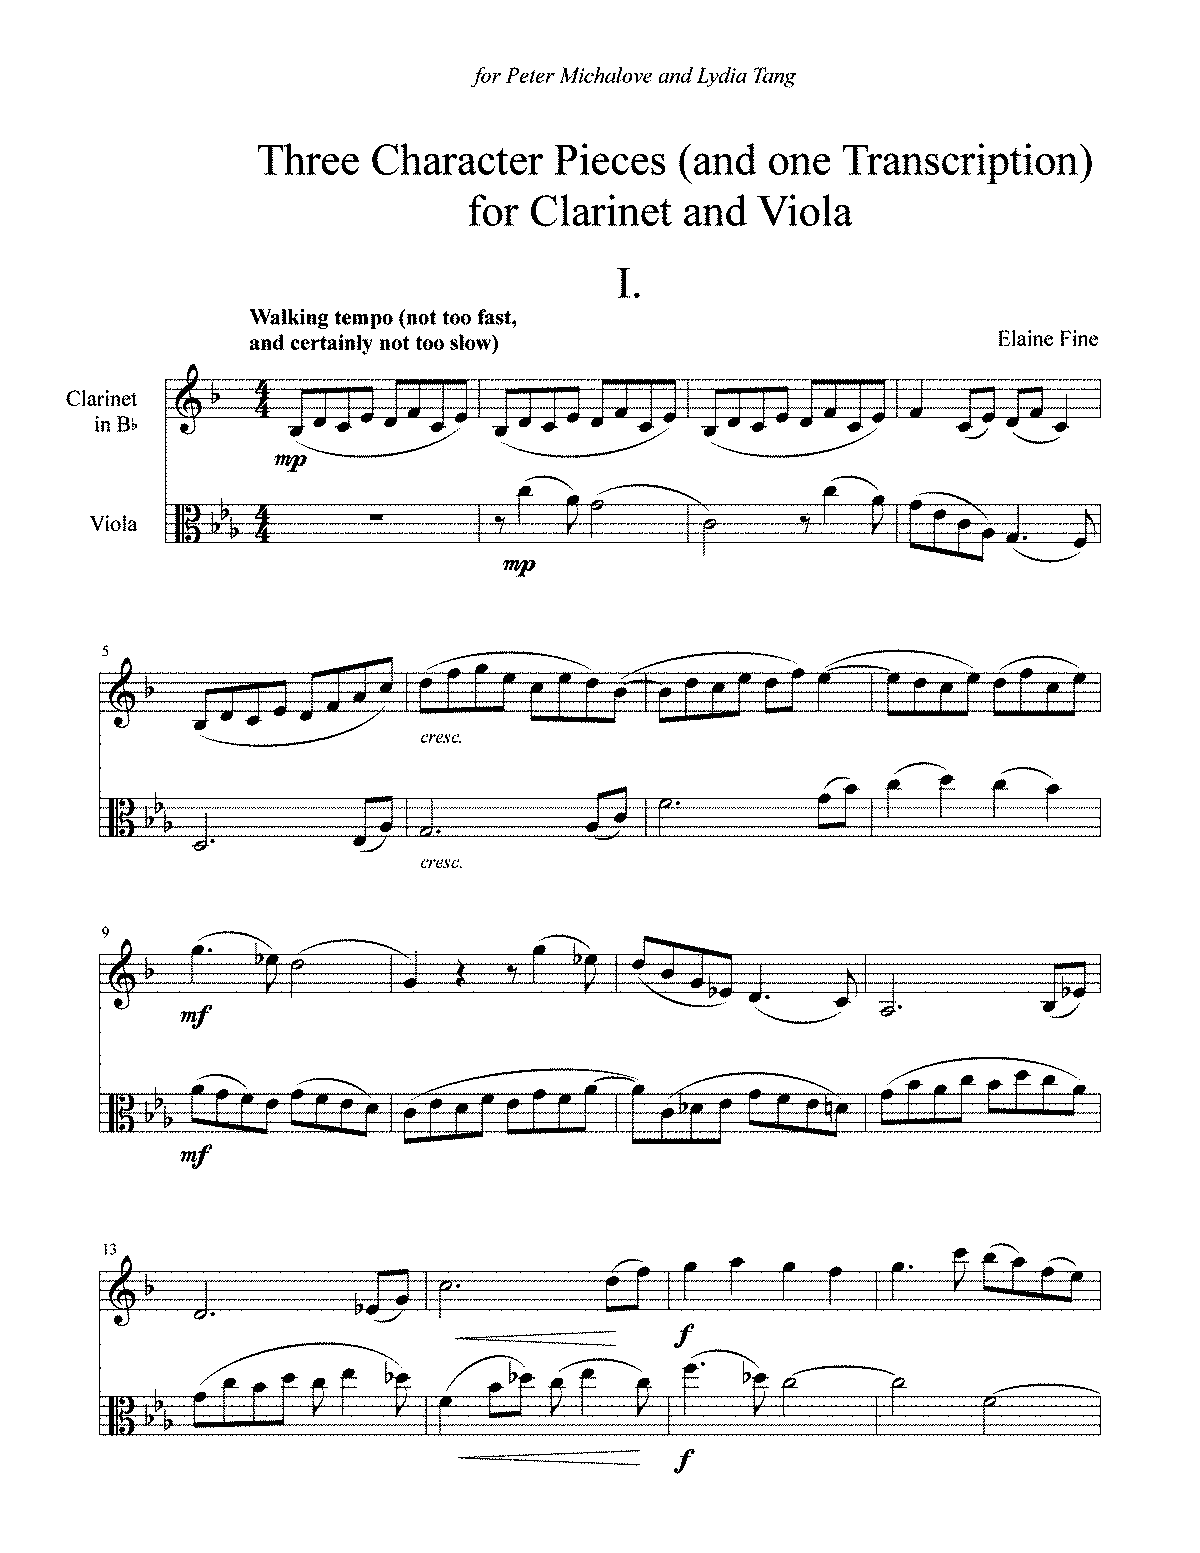 PMLP482121-Three Character Pieces and one Transcription for Clarinet and Viola Score and Parts.pdf